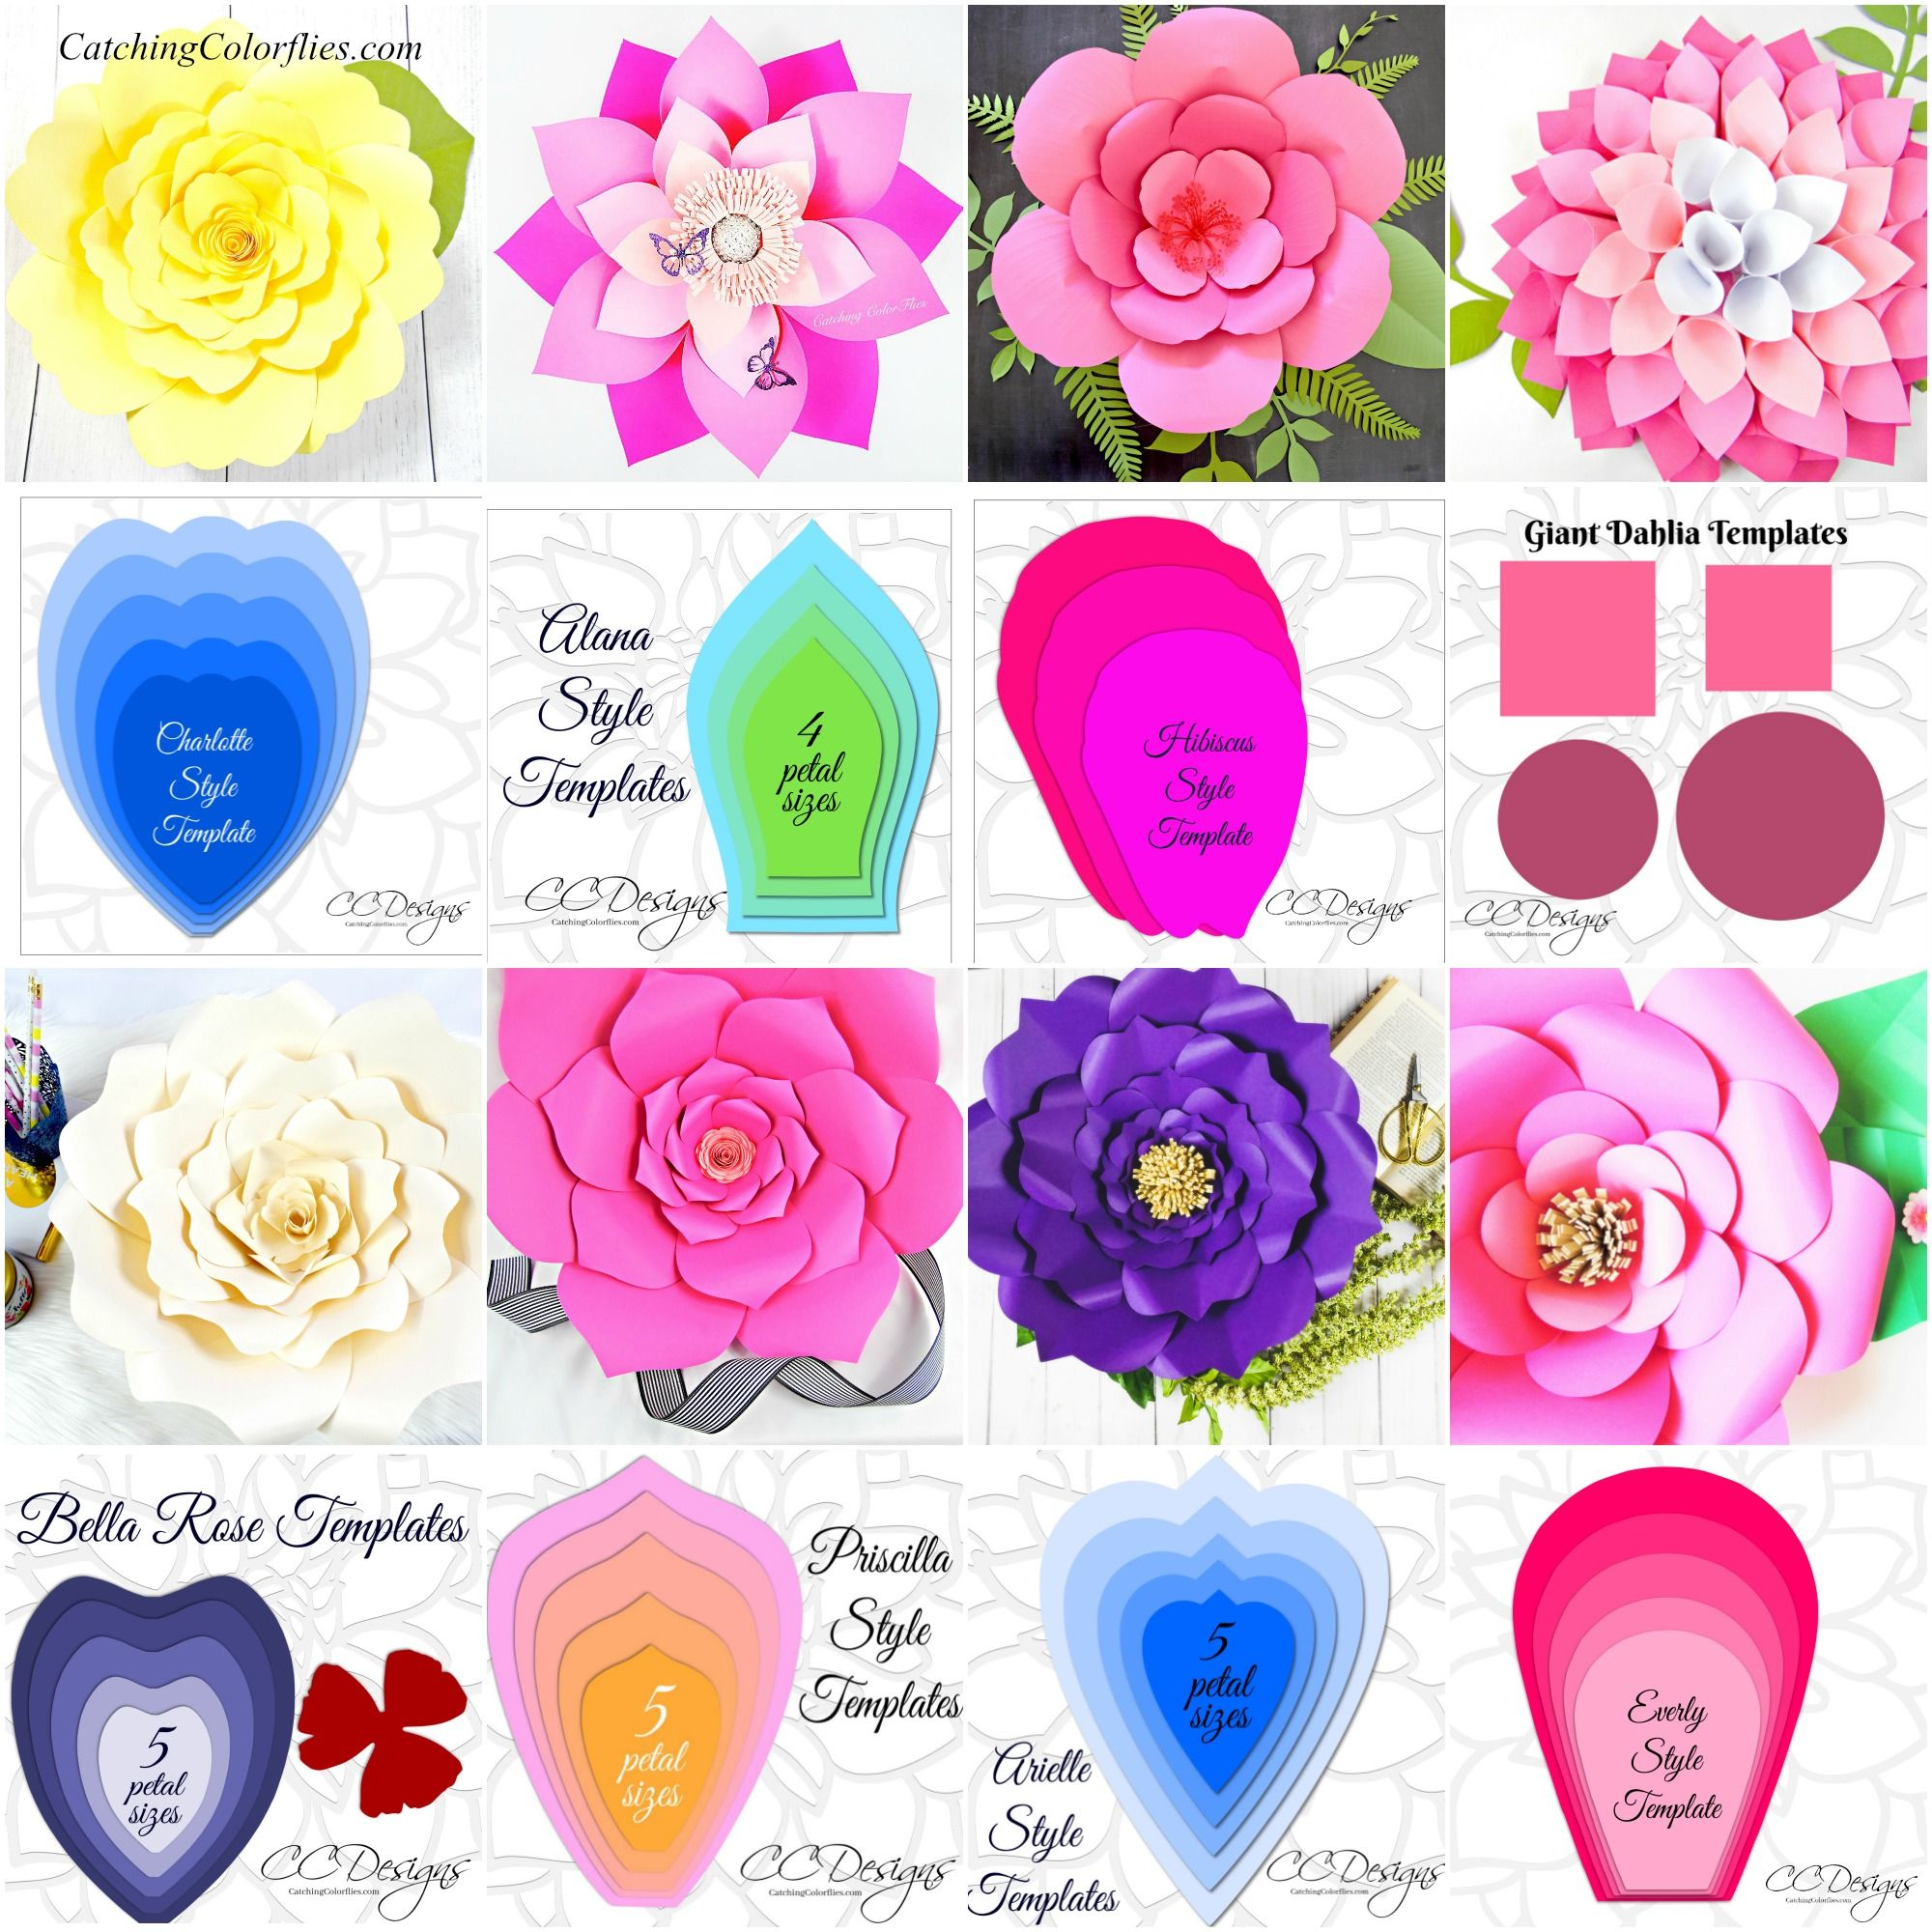 Free Giant Paper Flower Template The Art Of Giant Paper Flowers Giant Paper Flowers Template Paper Flower Template Paper Flowers Diy